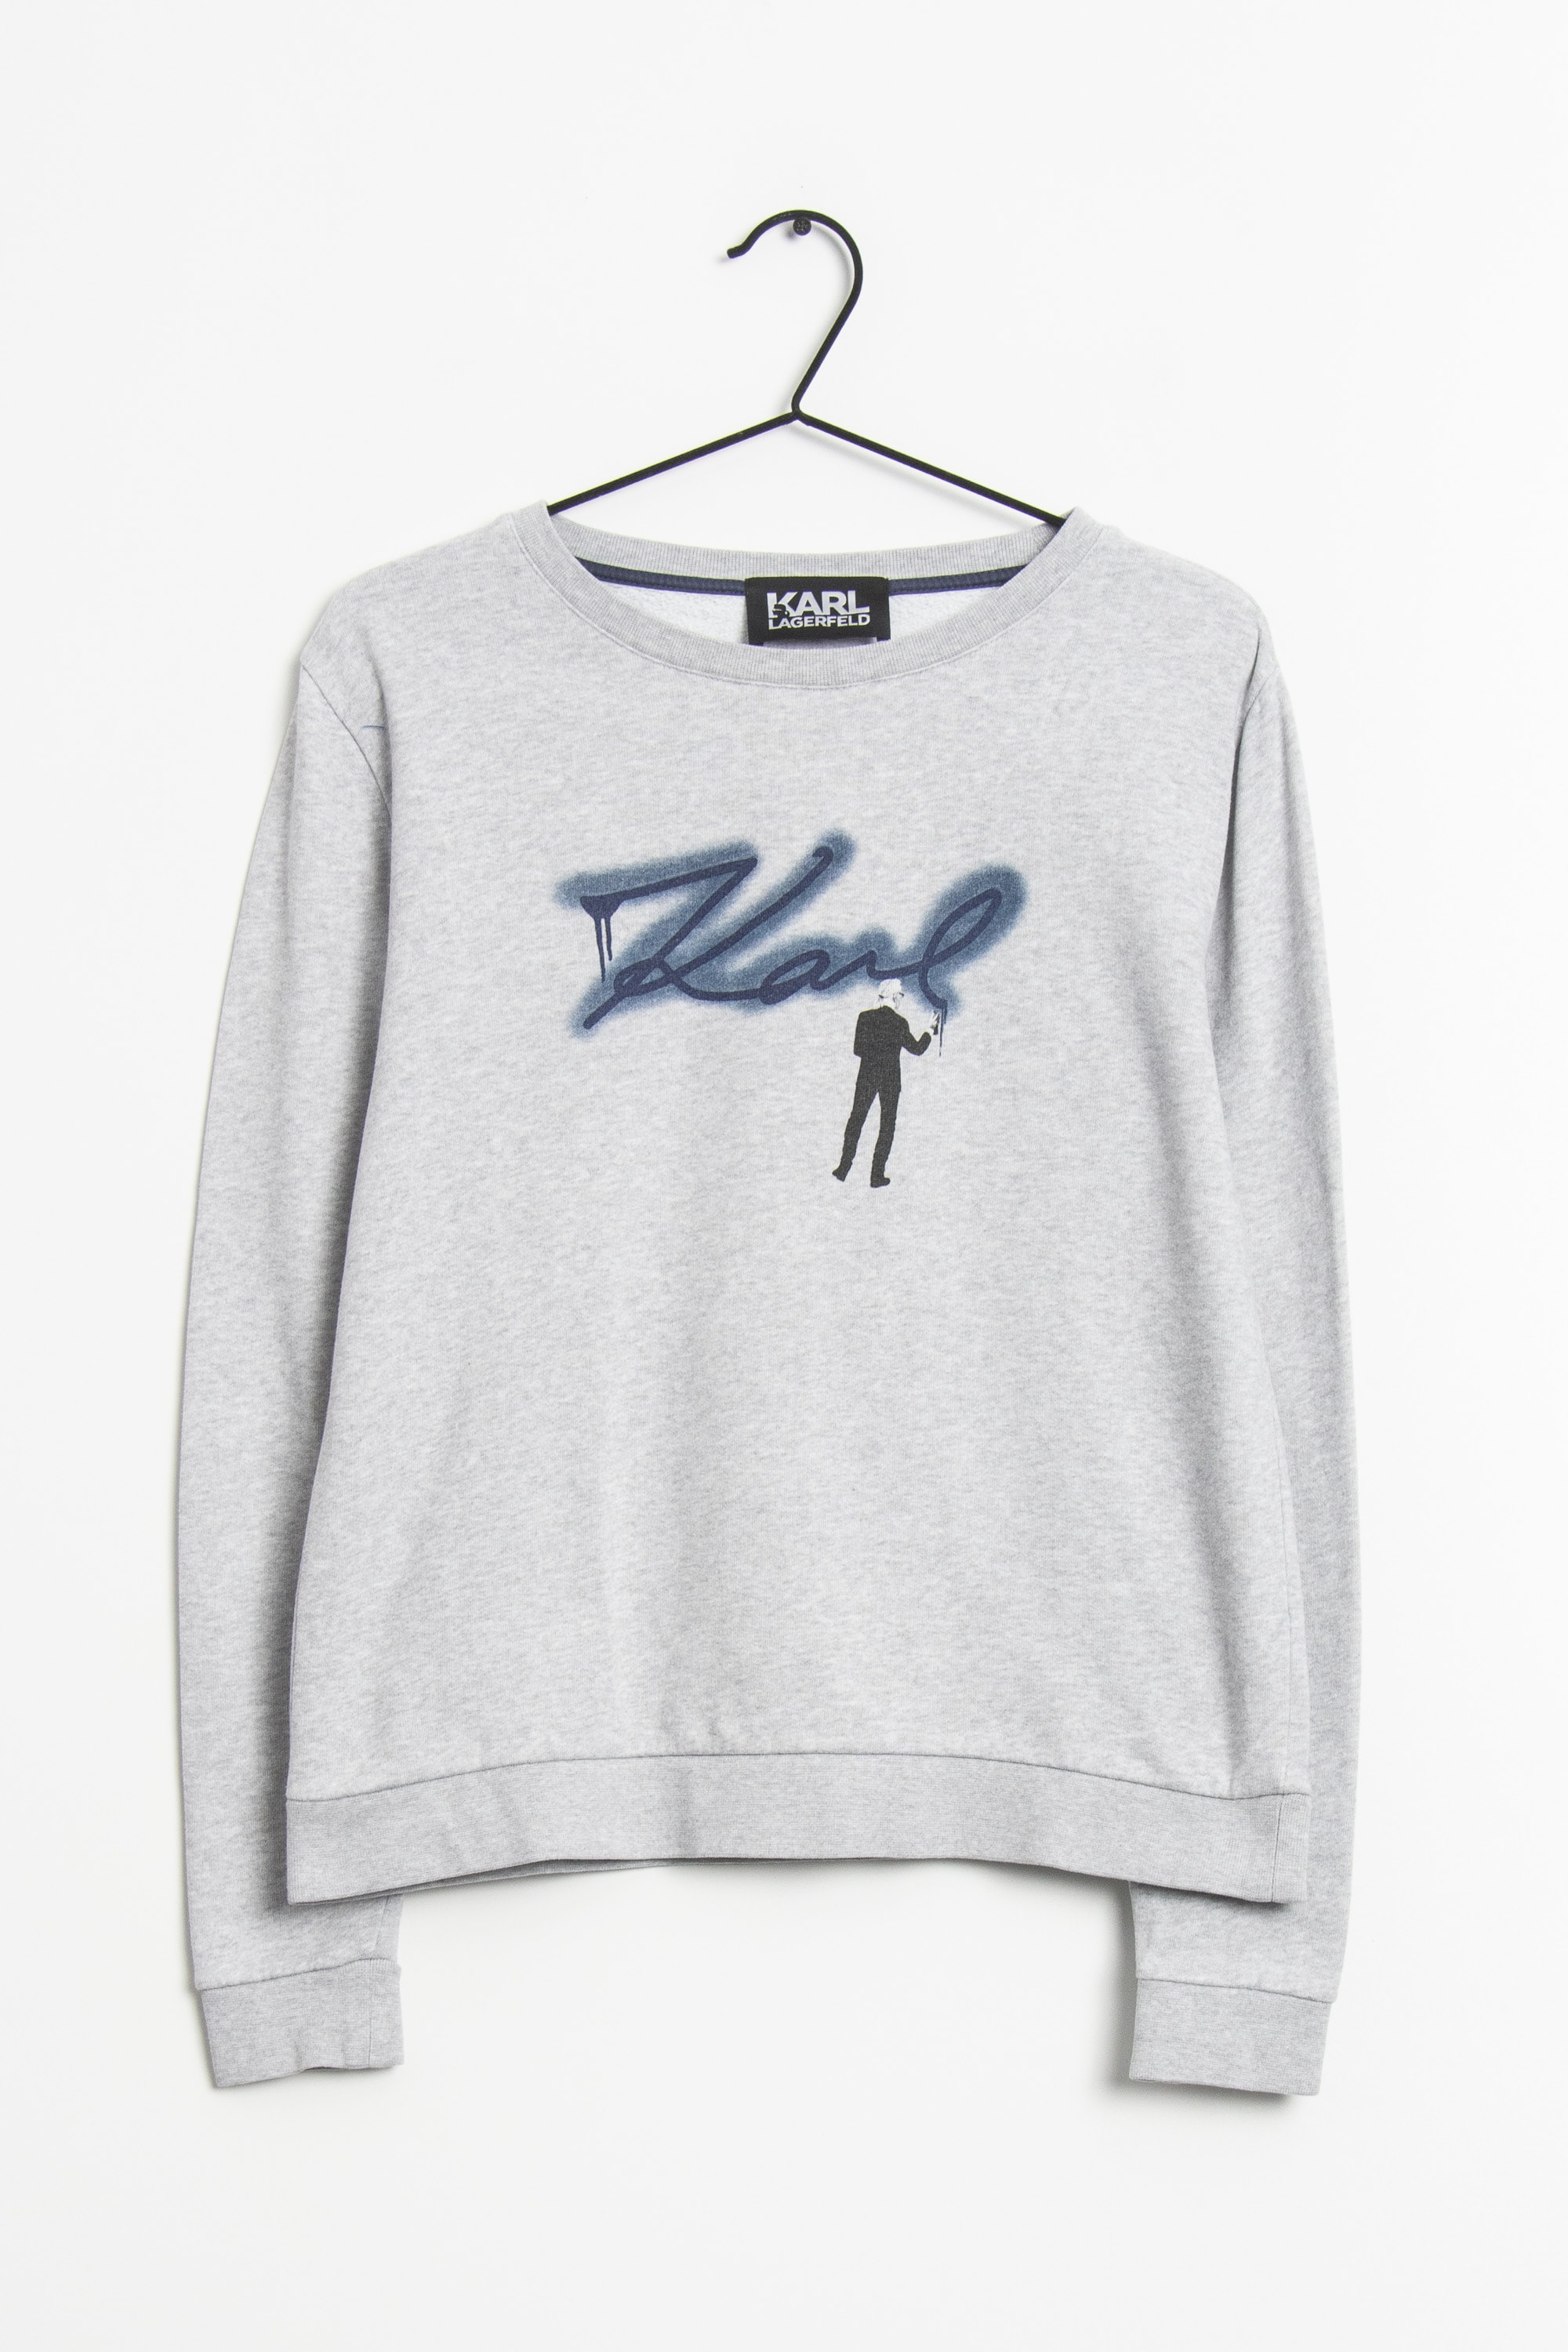 KARL LAGERFELD Sweat / Fleece Grau Gr.XS